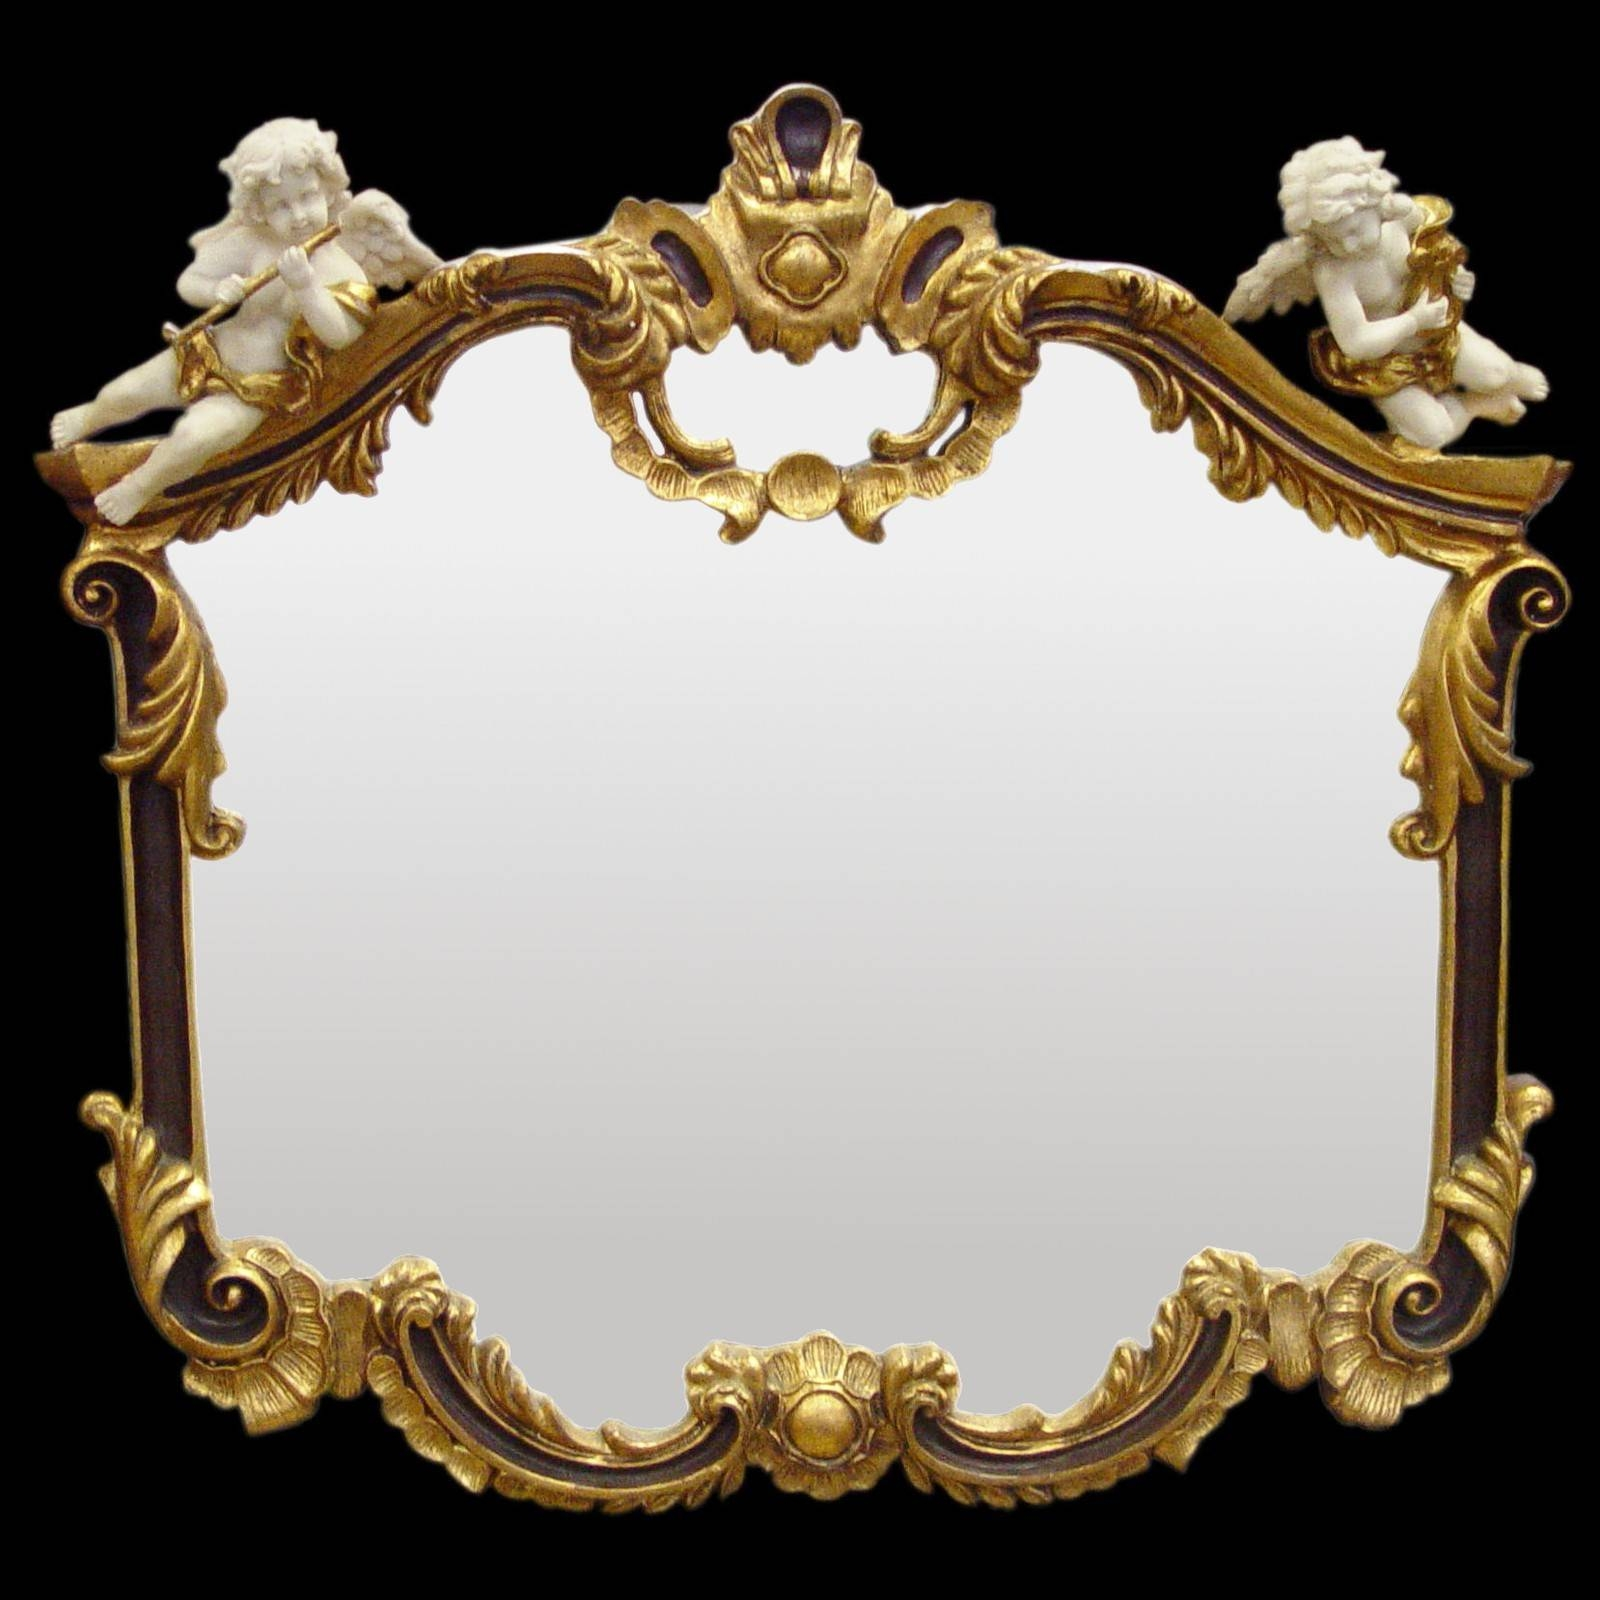 Baroque Mirror Wall Mirror Gold Red 2 White Music Angel Figurines with regard to White Baroque Mirrors (Image 2 of 25)